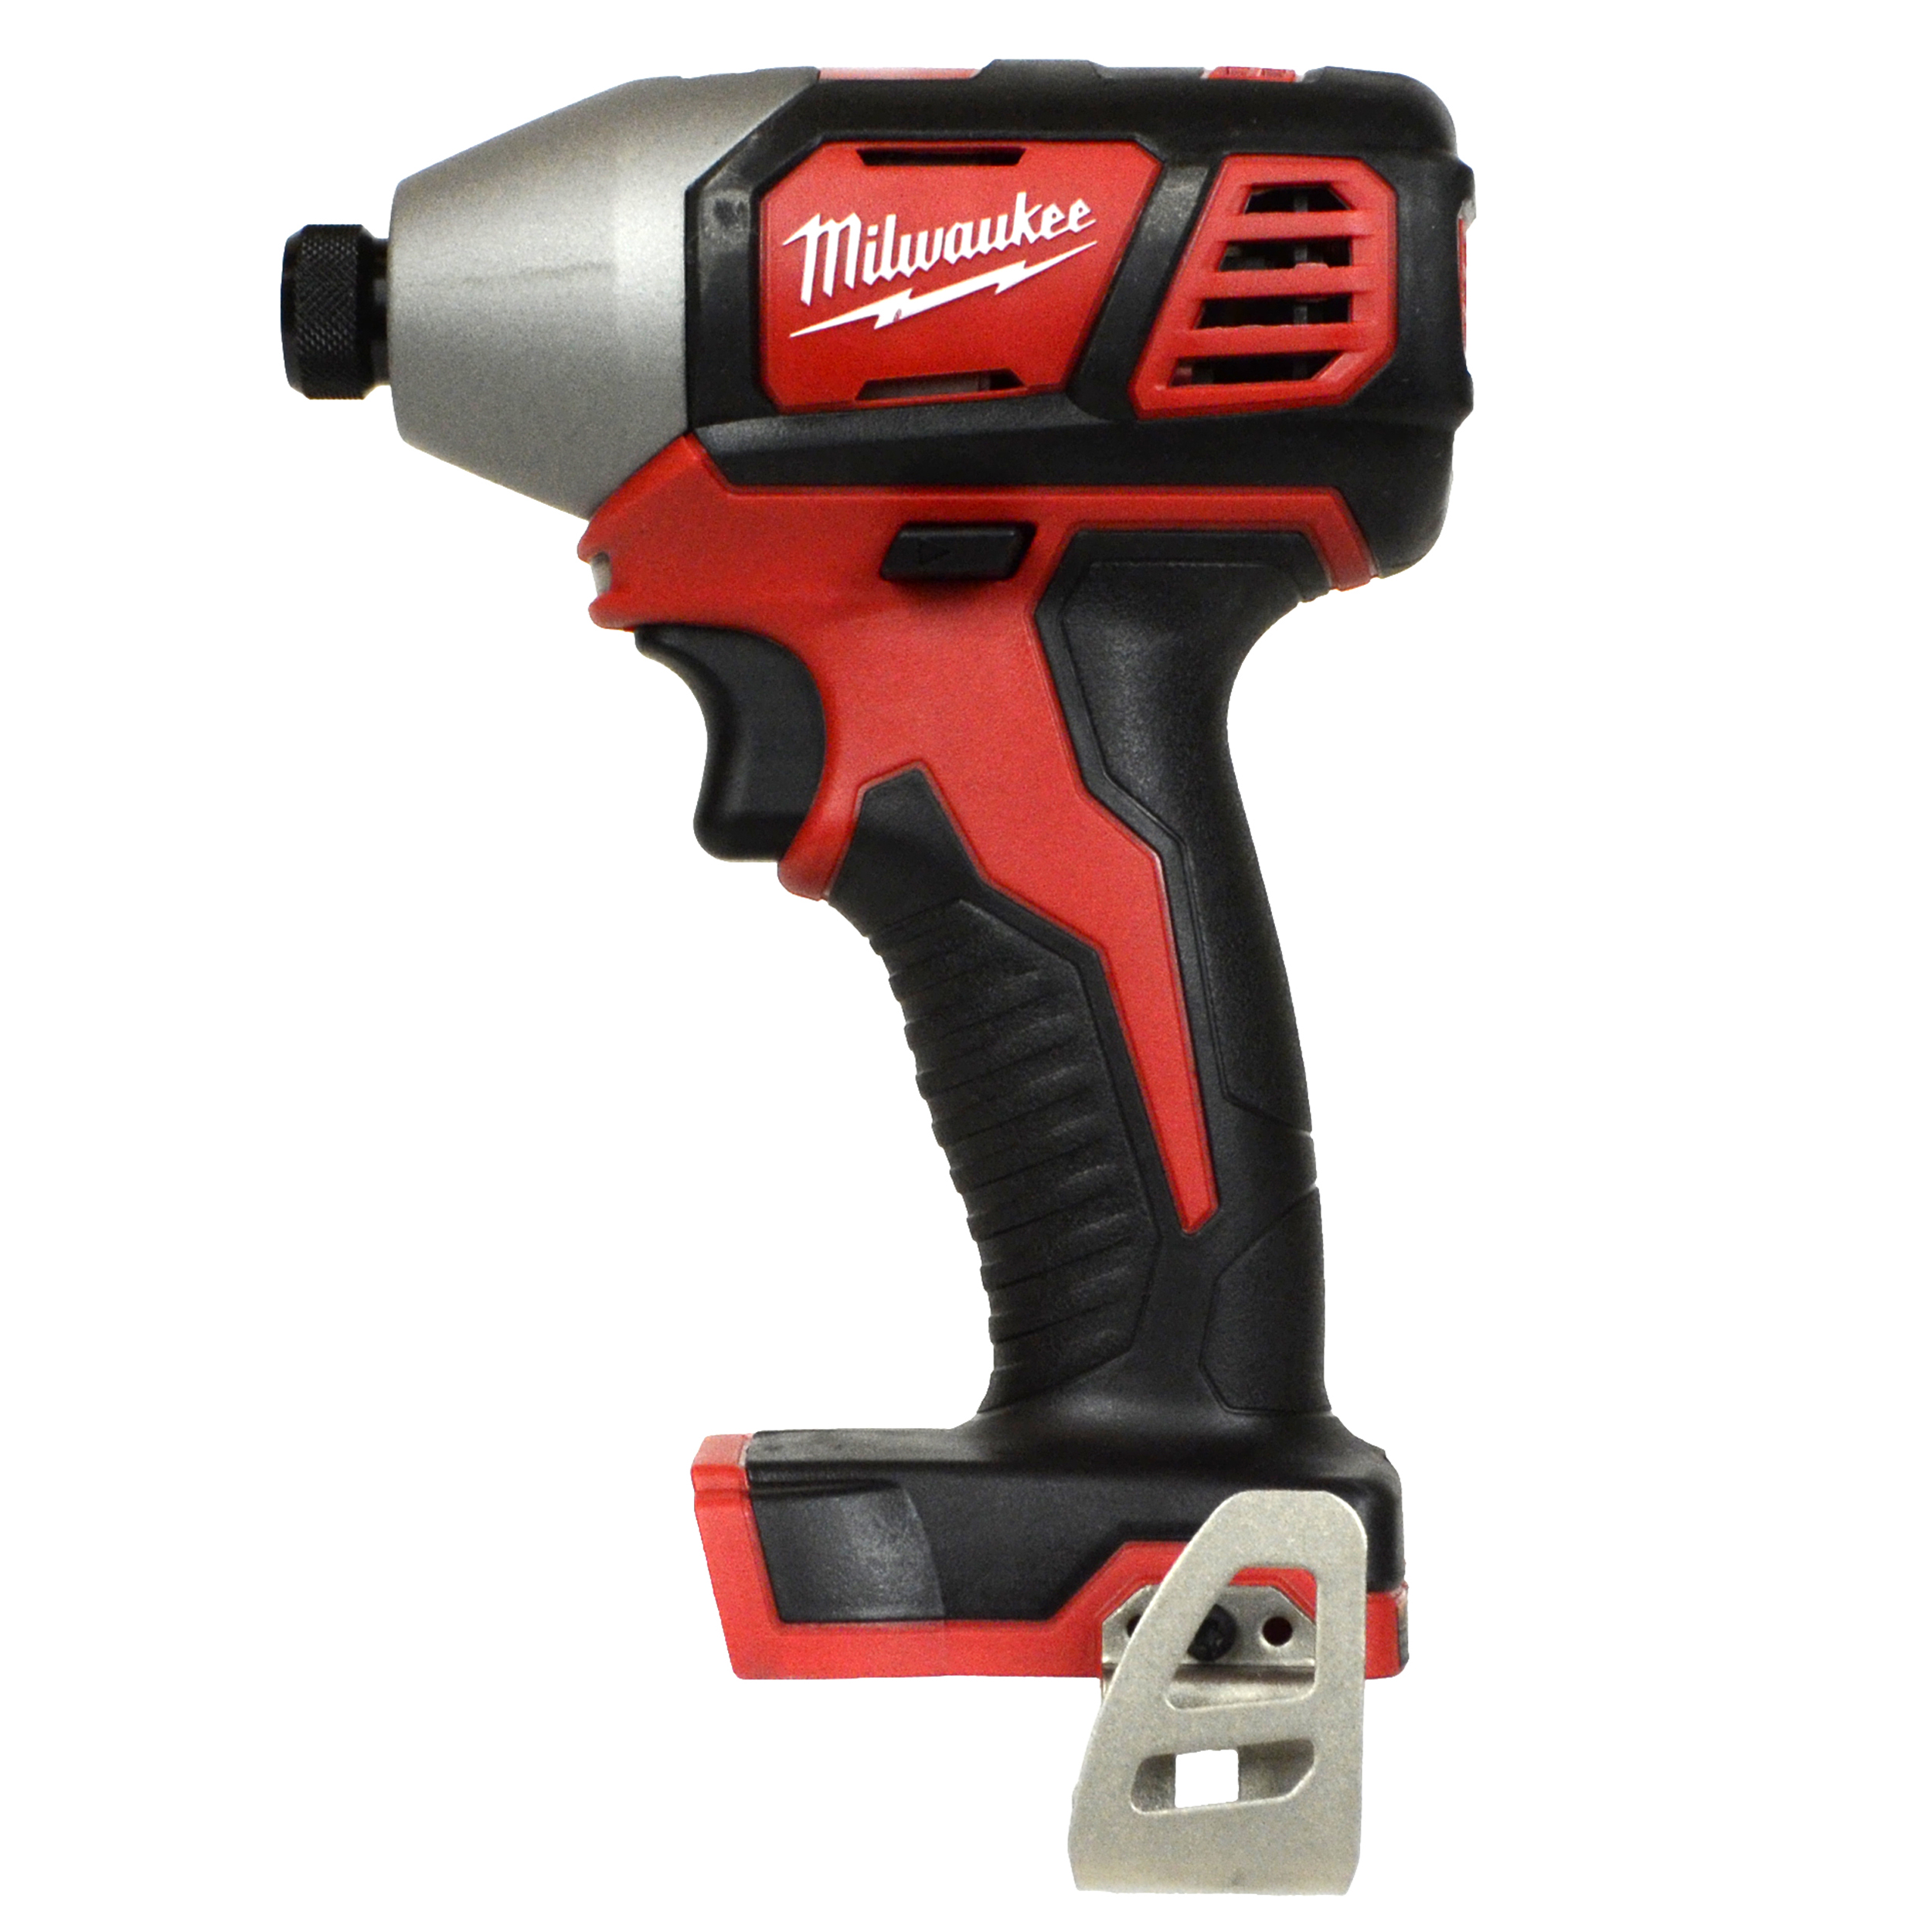 "Milwaukee Tool 2656-20 18V 1 4"" M18 Cordless Hex Impact Driver, Bare Tool by"